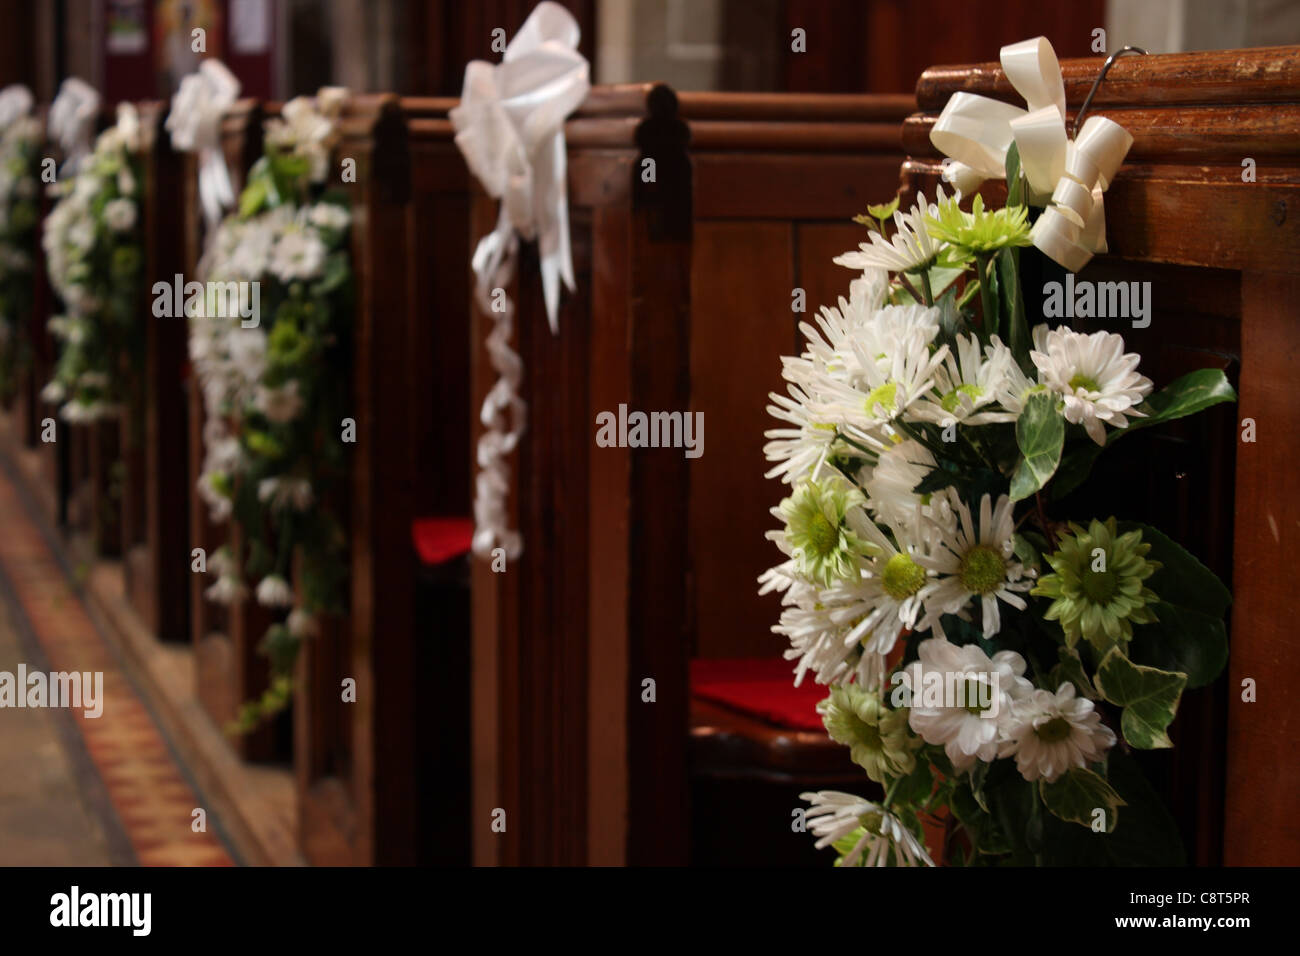 Church pews with wedding floral arrangements of flowers in green and church pews with wedding floral arrangements of flowers in green and white at the end of each pew junglespirit Image collections